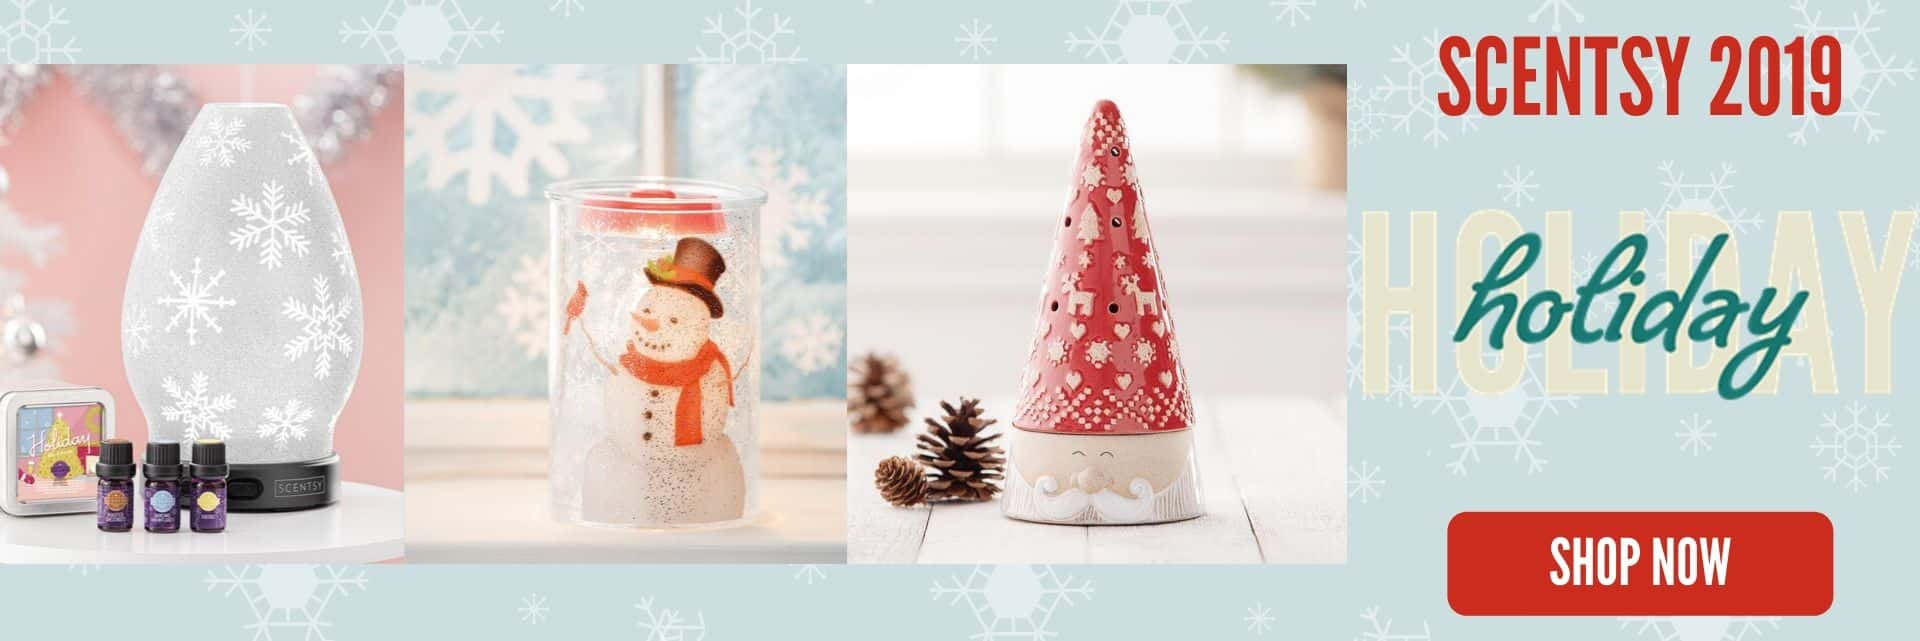 HOLIDAY SCENTSY 2019 COLLECTION SHOP NOW